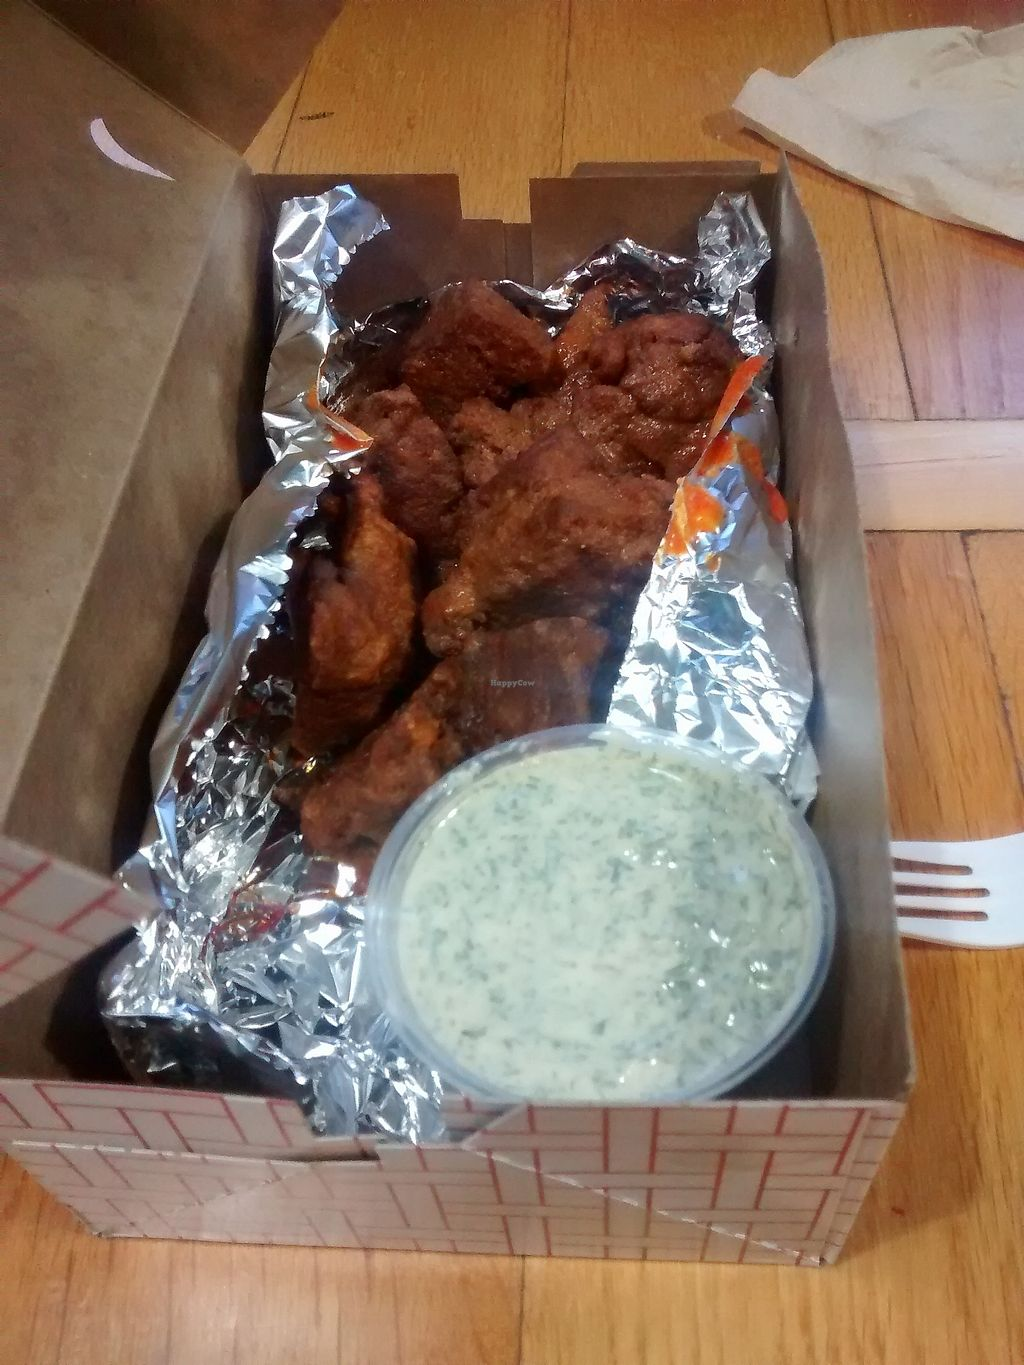 "Photo of Allentown Pizza   by <a href=""/members/profile/lentils_af"">lentils_af</a> <br/>Vegan wings with dill dipping sauce.  <br/> October 9, 2017  - <a href='/contact/abuse/image/74160/313651'>Report</a>"